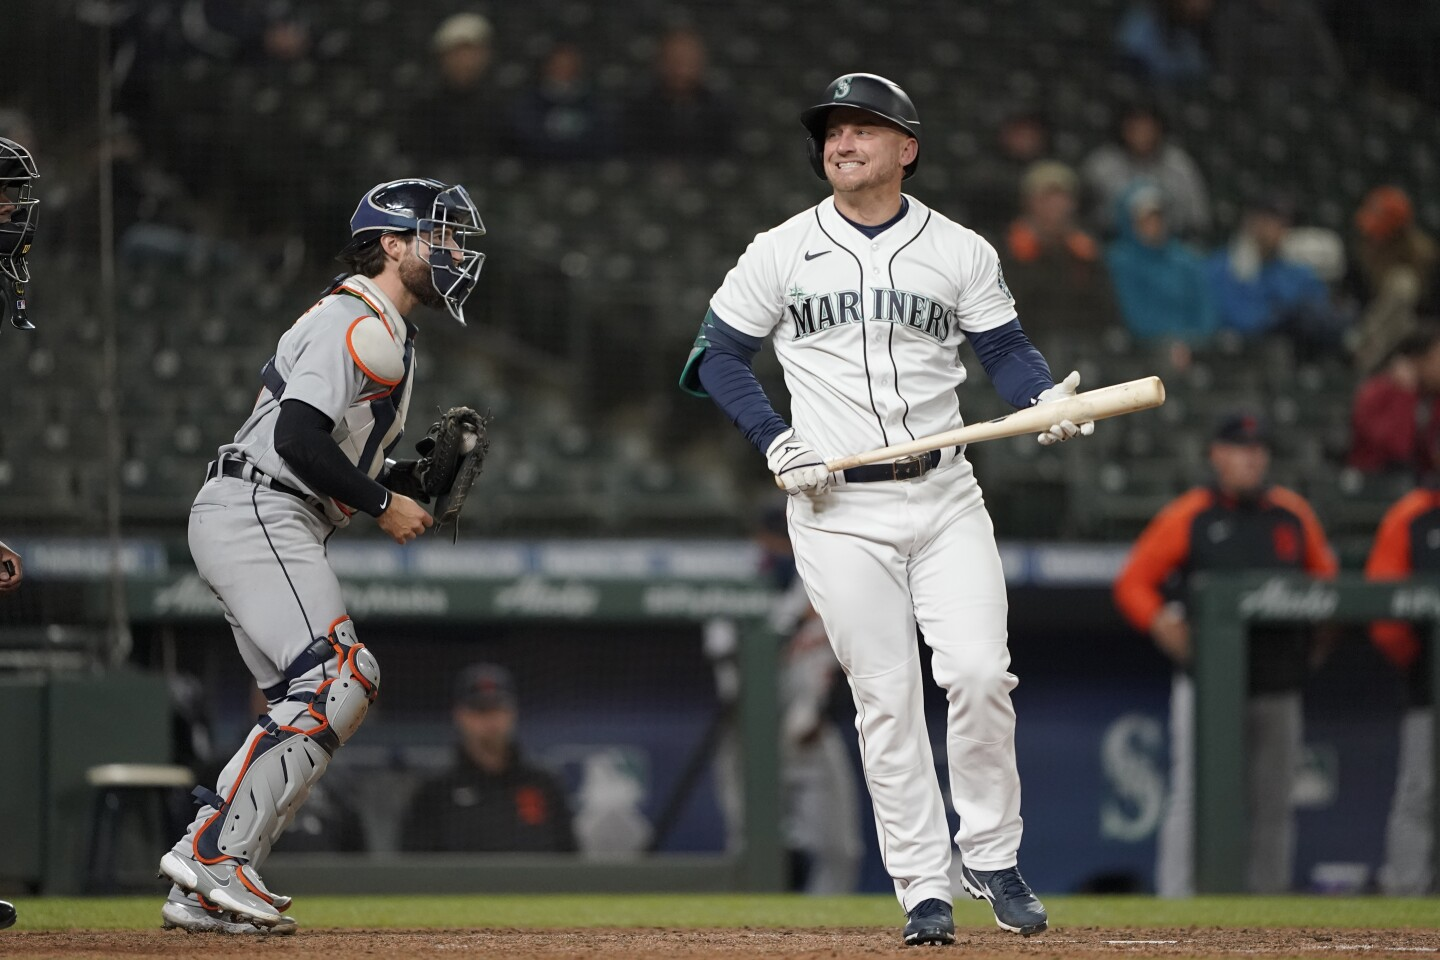 Seattle Mariners' Kyle Seager, right, reacts after striking out swinging with two men on base as Detroit Tigers catcher Eric Haase, left holds the ball during the eighth inning of a baseball game Wednesday, May 19, 2021, in Seattle. (AP Photo/Ted S. Warren)